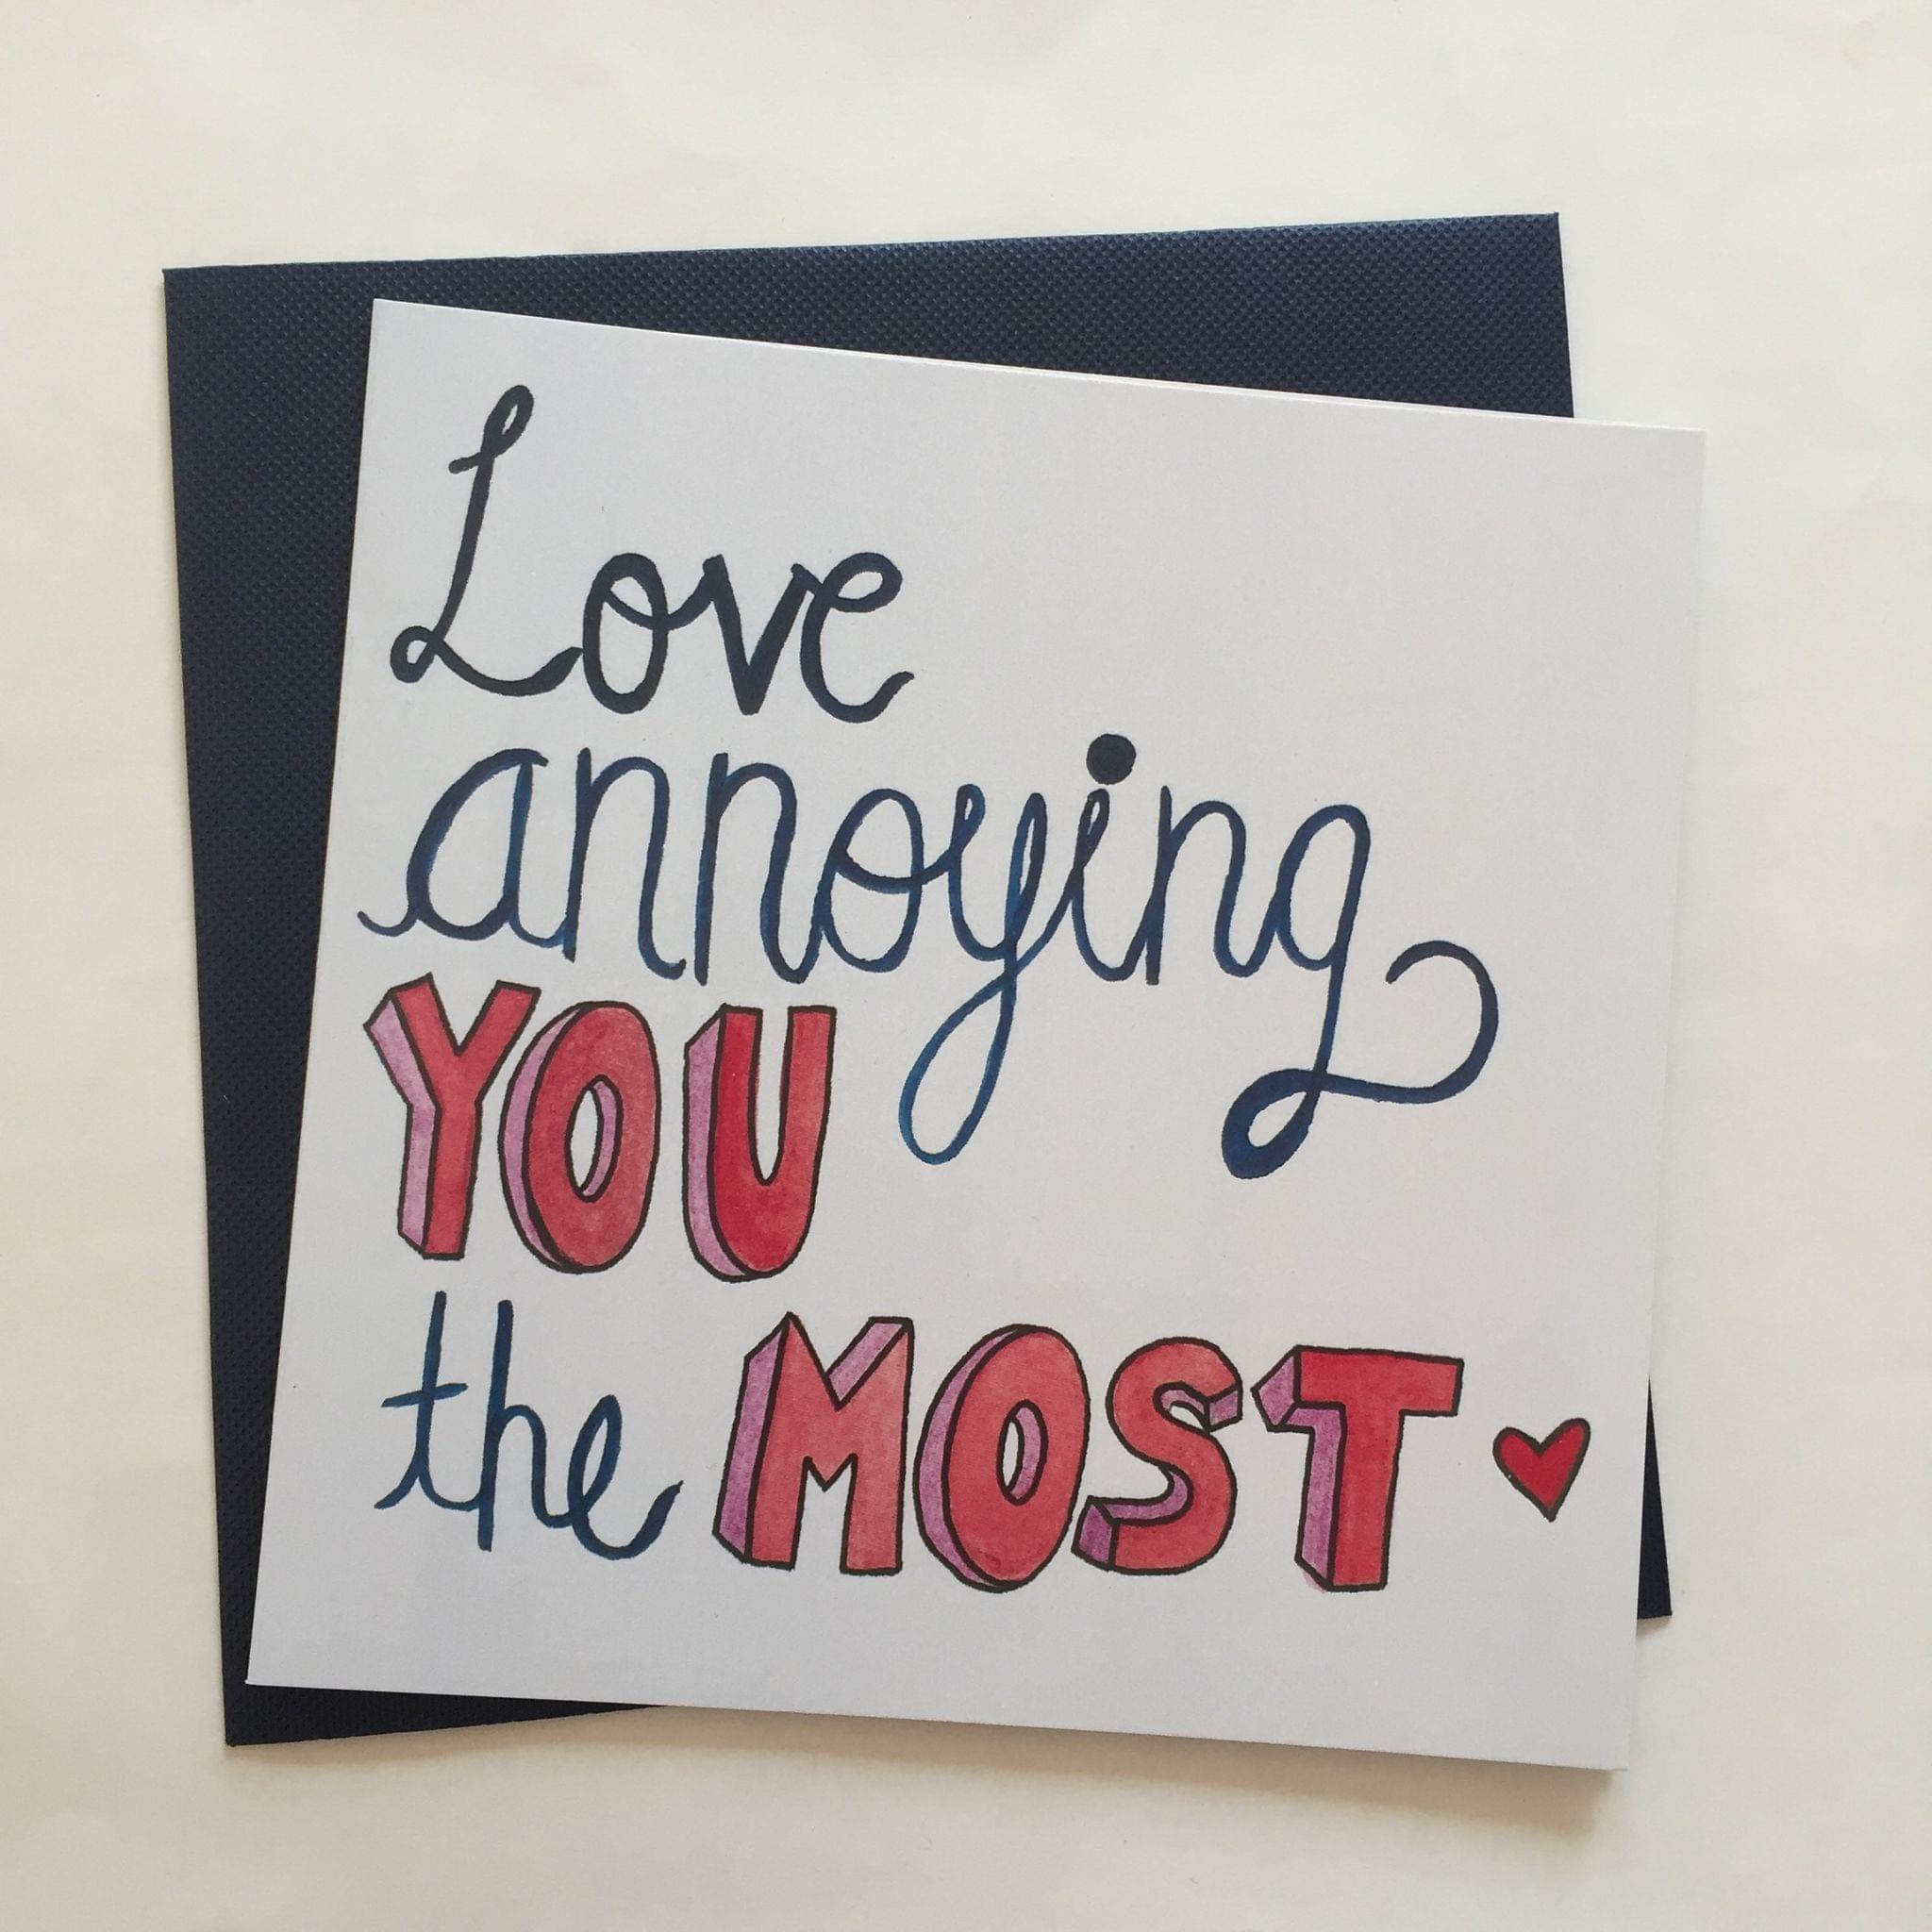 'Love annoying you the most' card